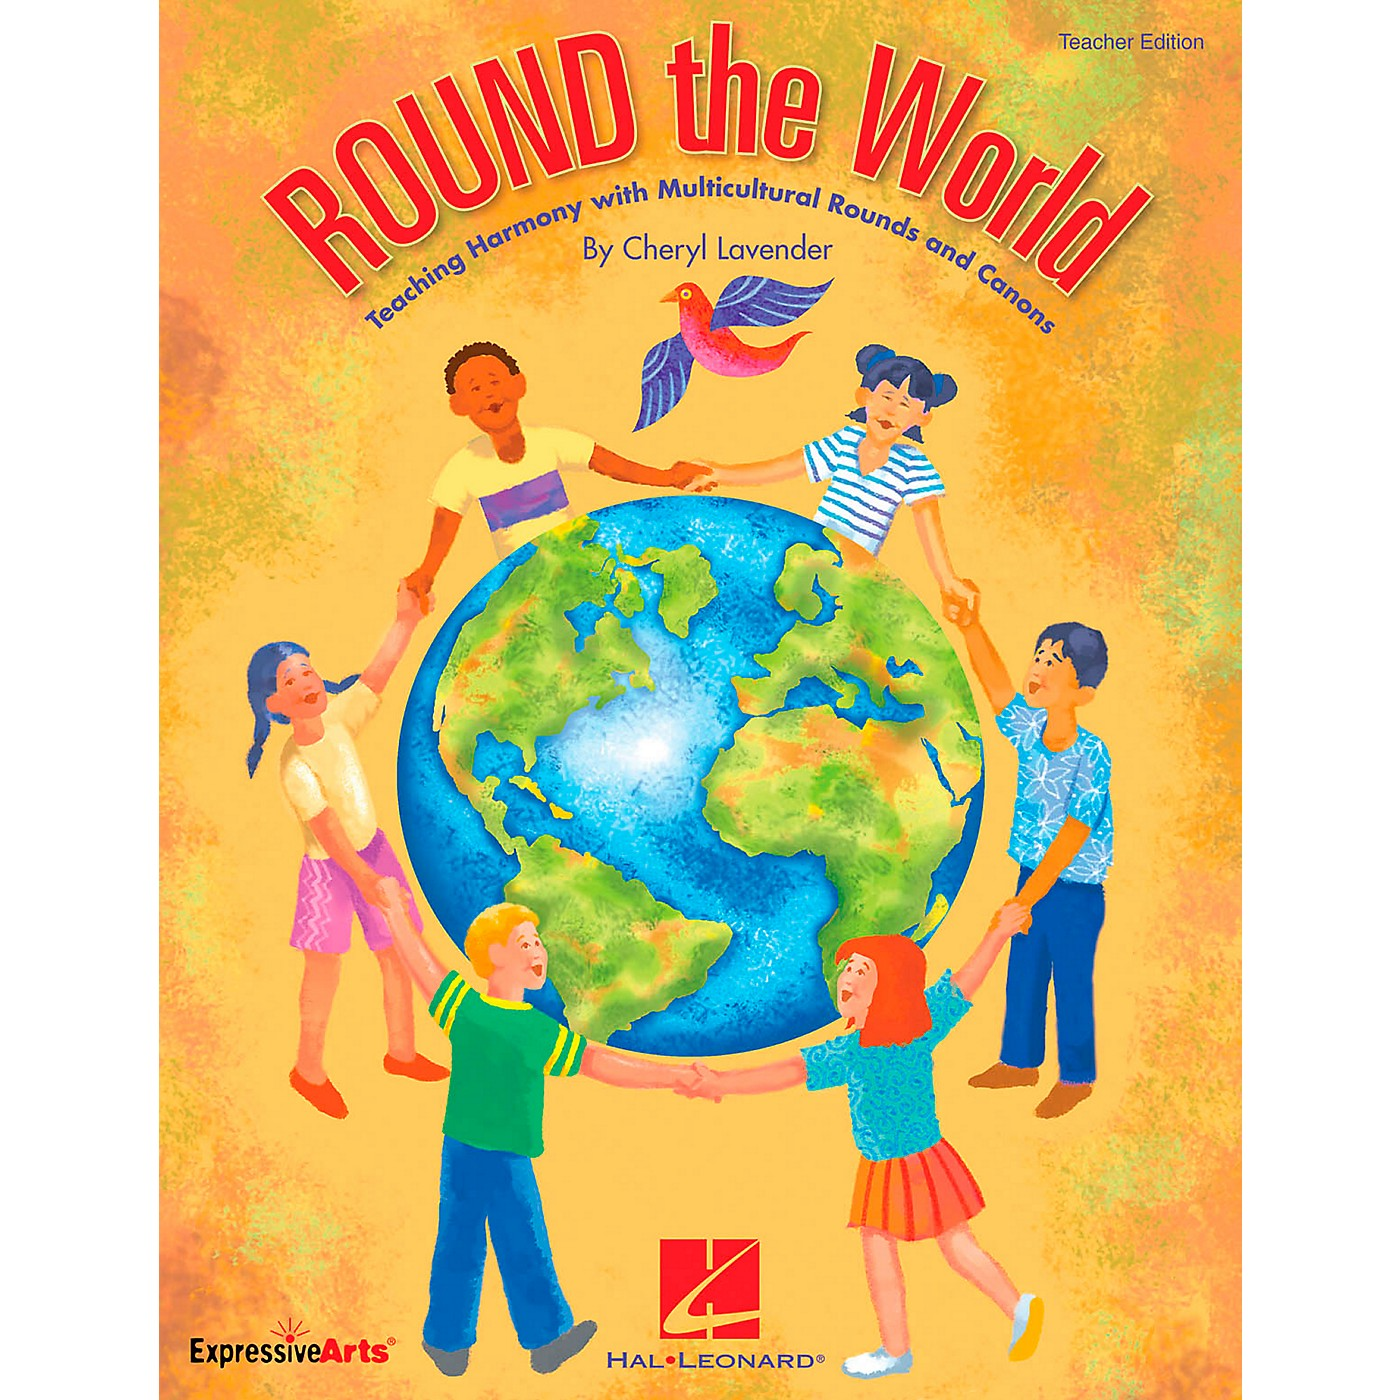 Hal Leonard ROUND The World - Teaching Harmony Multicultural Rounds And Canons, Teacher's Edition thumbnail